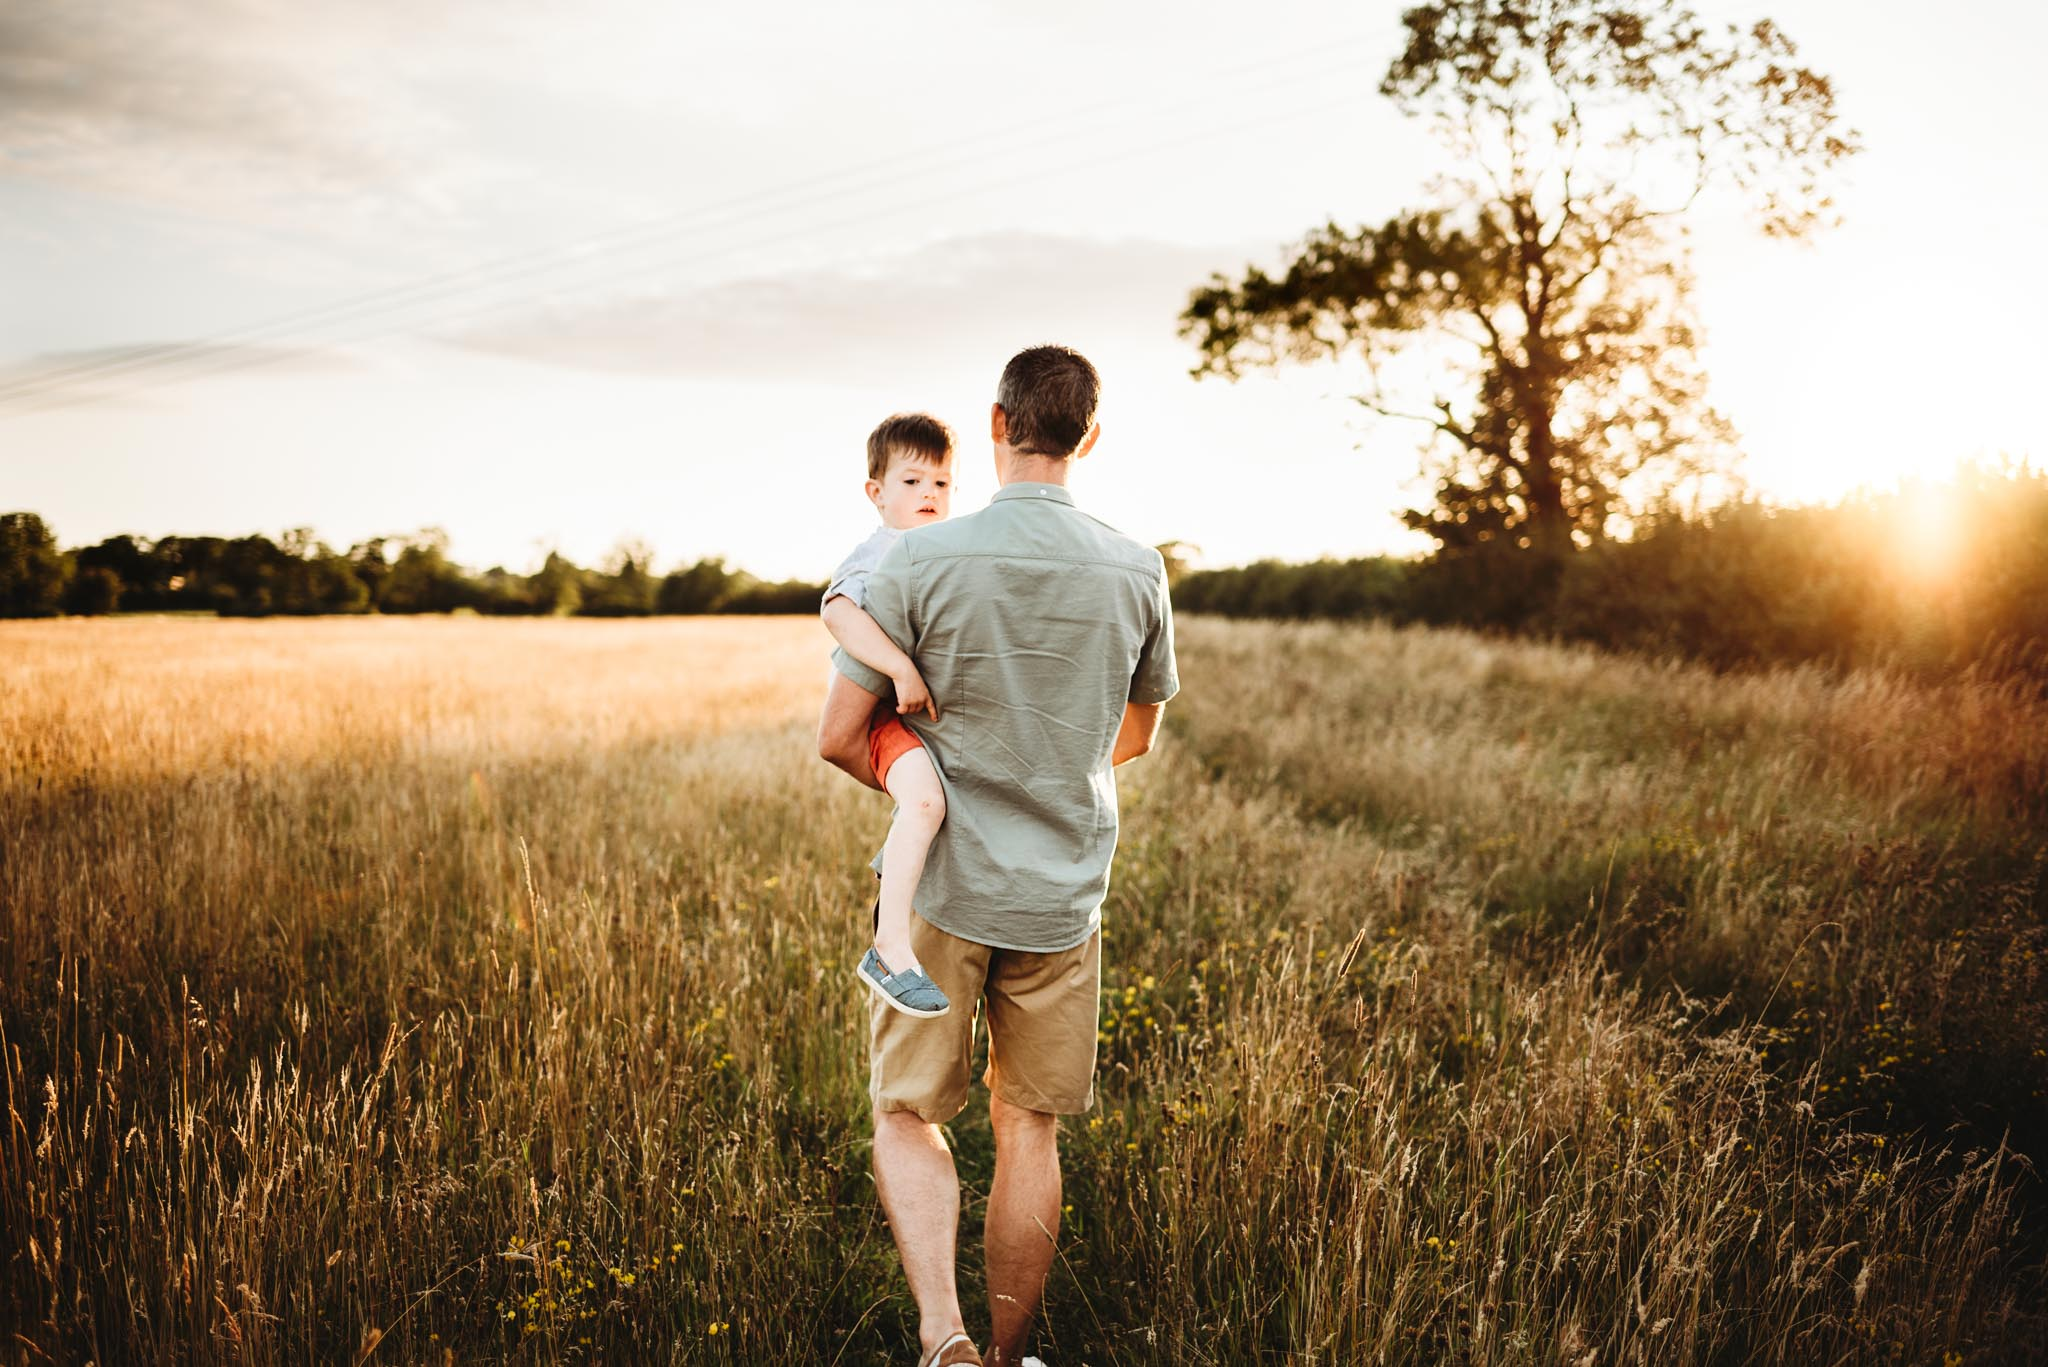 a man carrying his son in a field during sunset